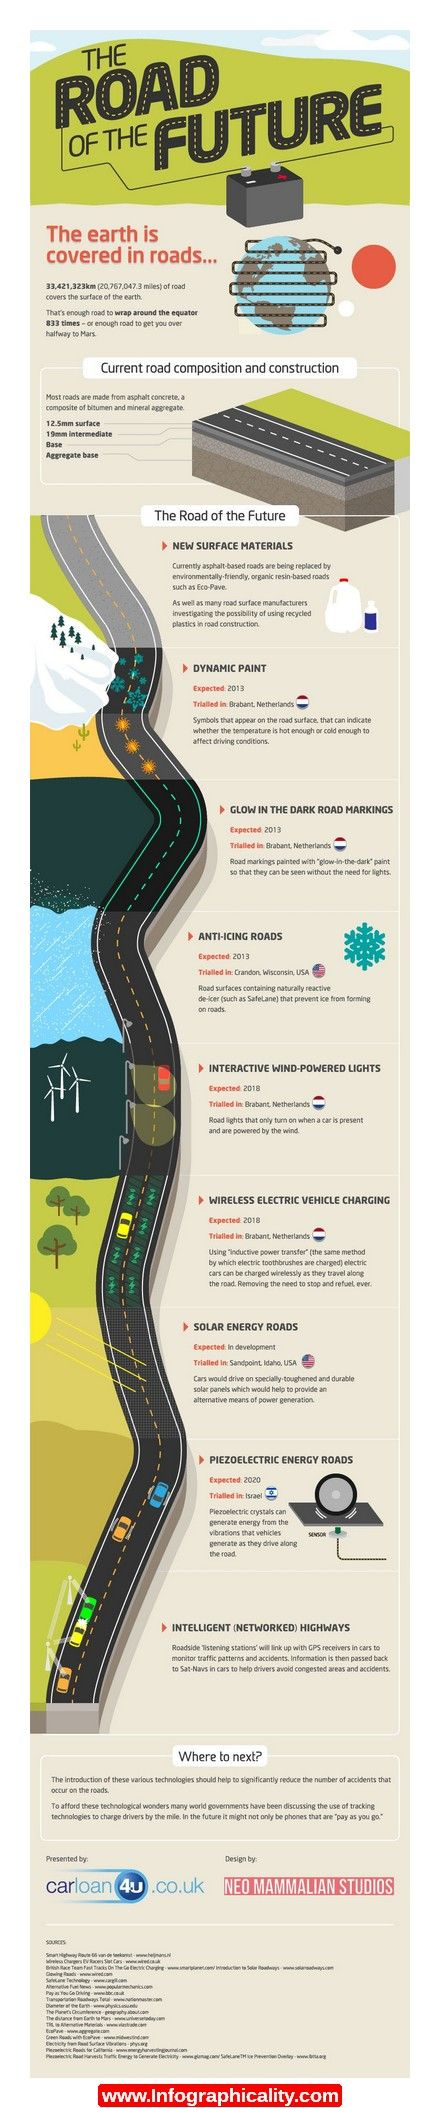 Likely cars of the future likely cars of the future http www - Future Road Technology Eco Pave And Likely Even Recycled Plastics Will Be The Standard Materials In Road Construction Of The Future